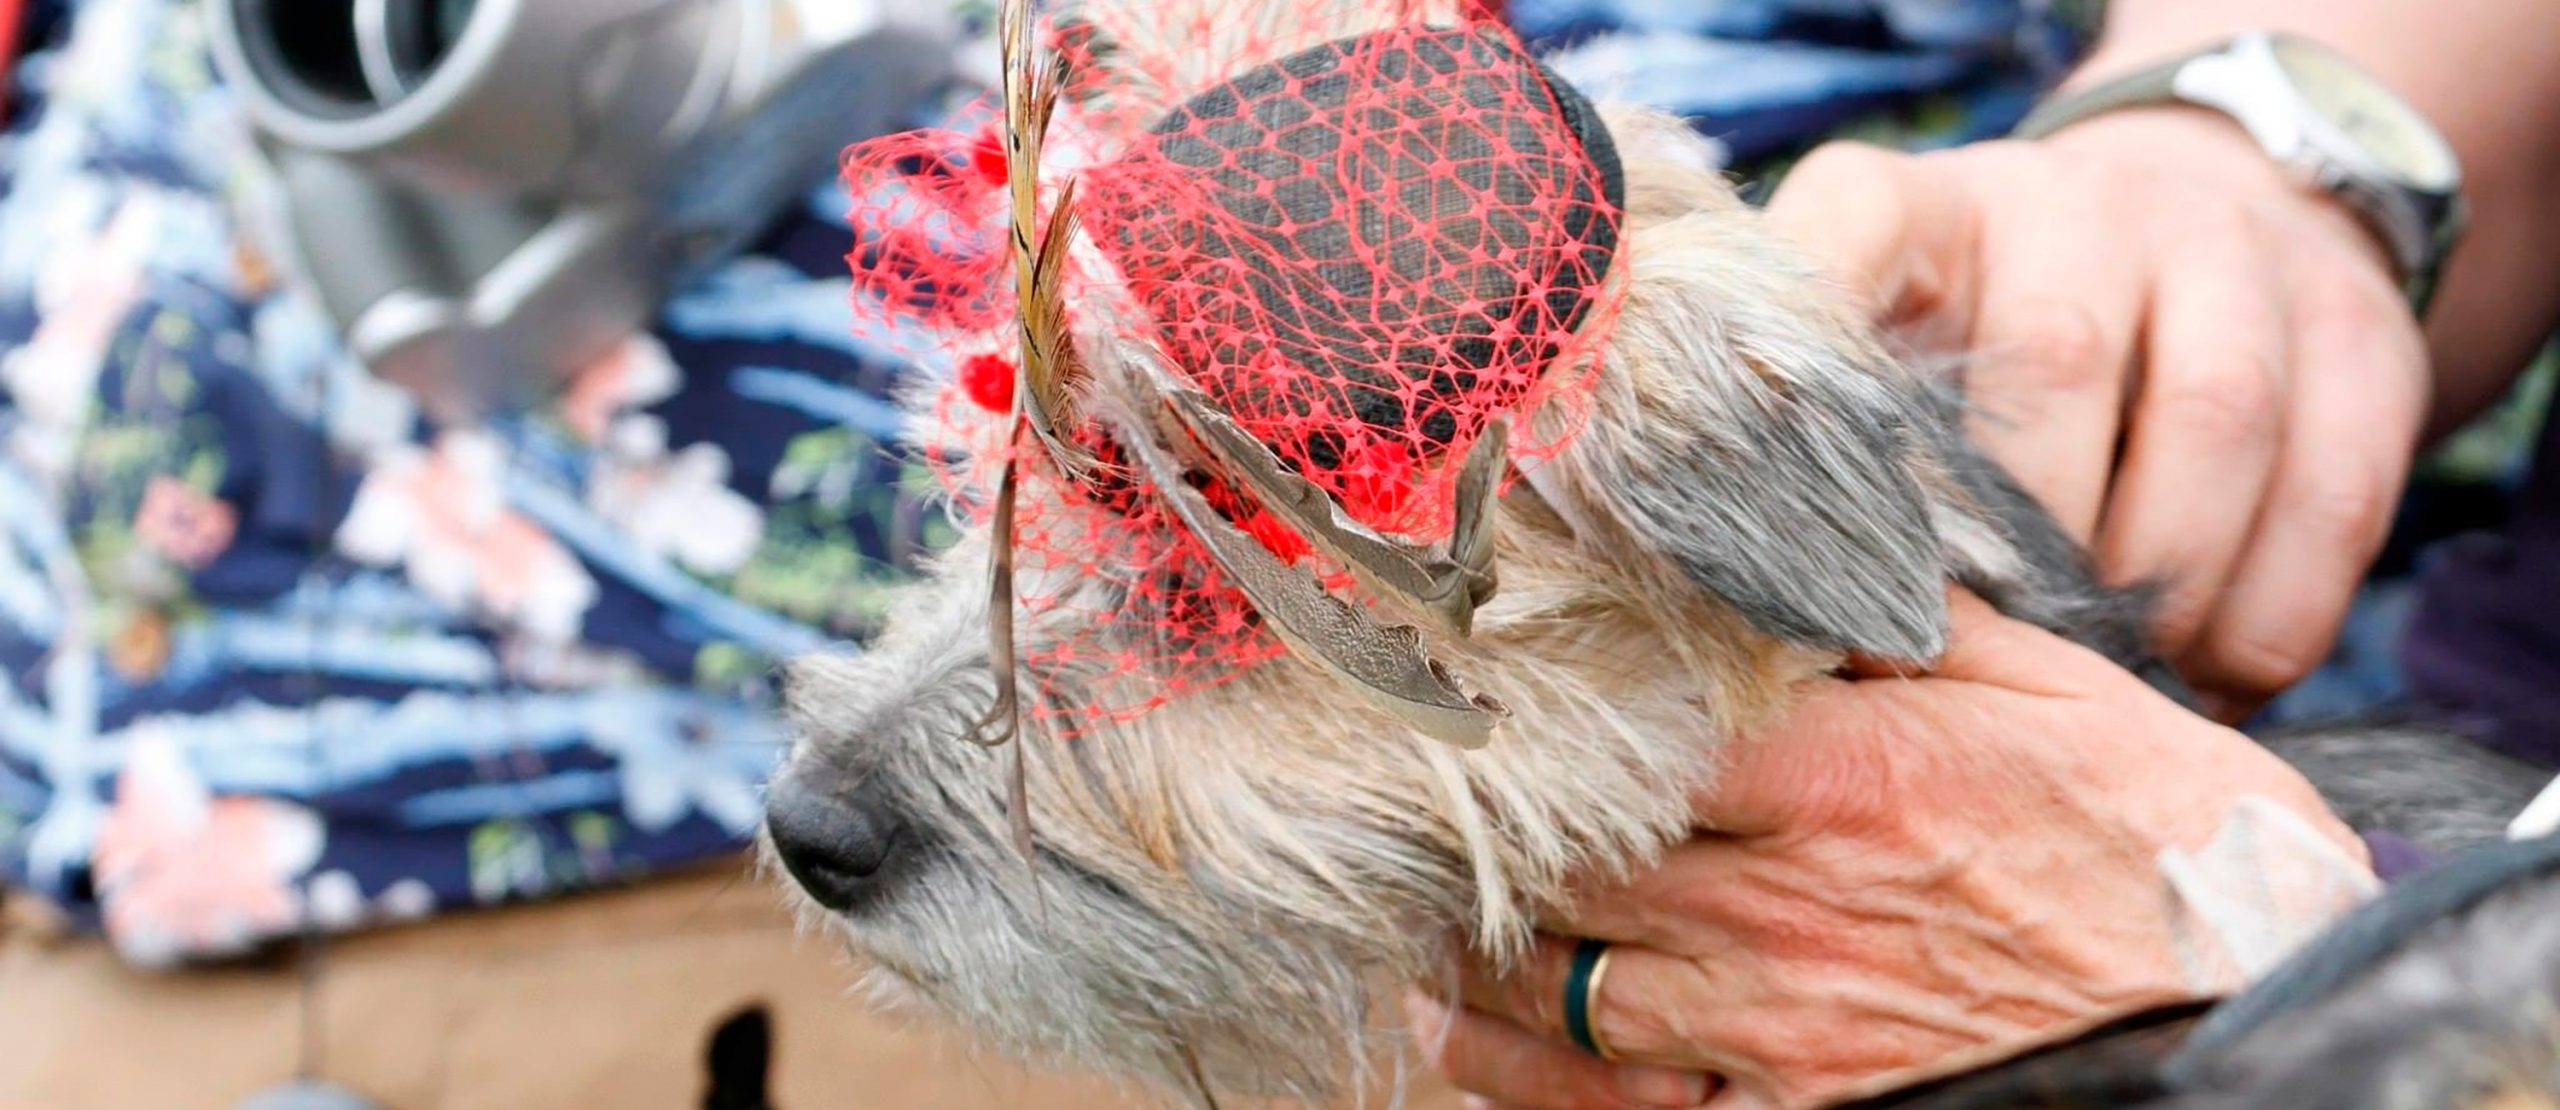 Dog wearing a black hat with red veil